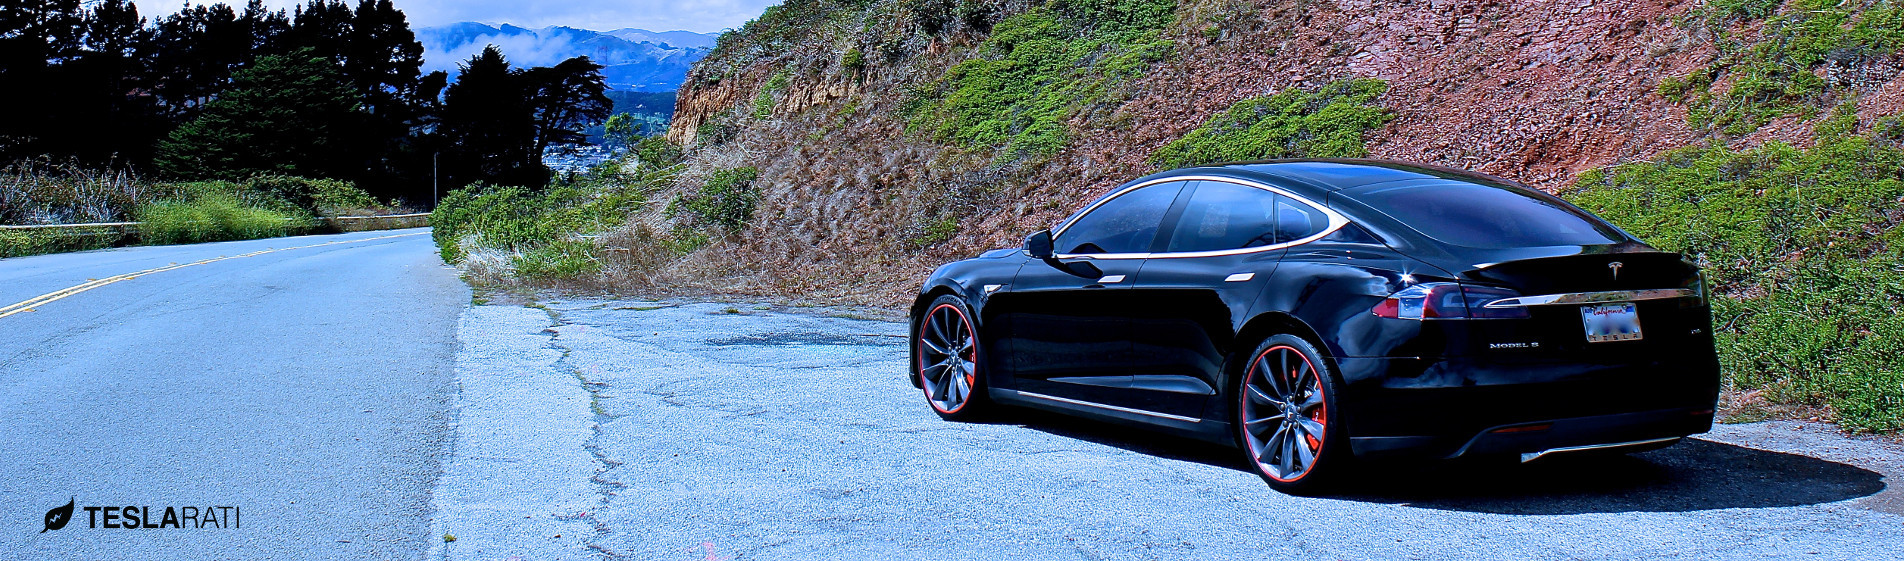 Tesla-Model-S-San-Francisco-Peaks-Skinny